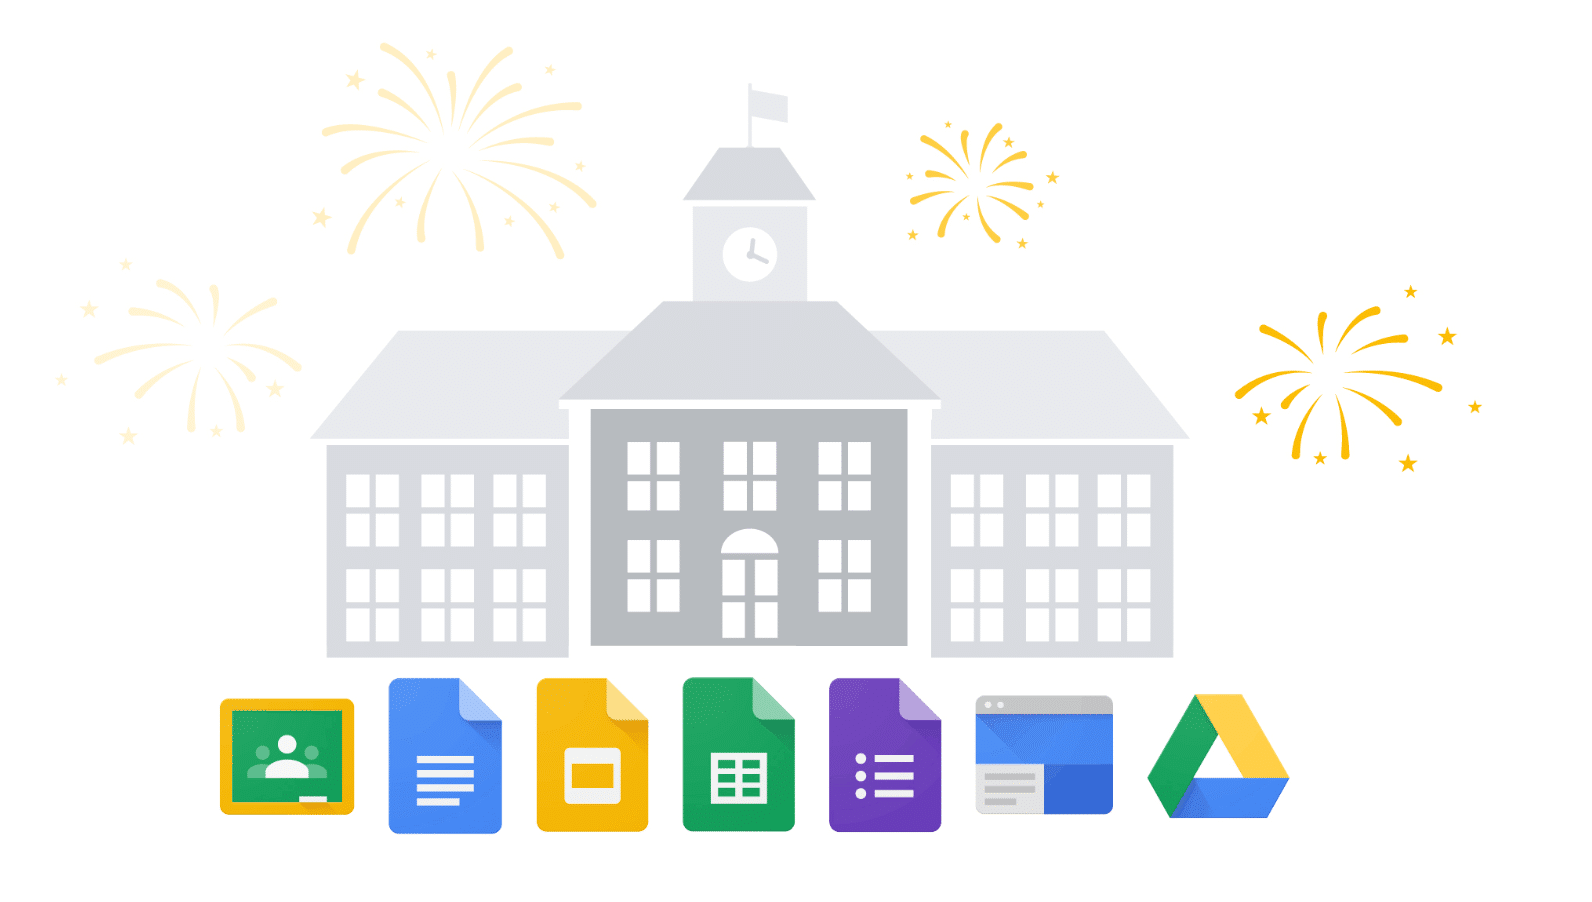 Google Educator Exam